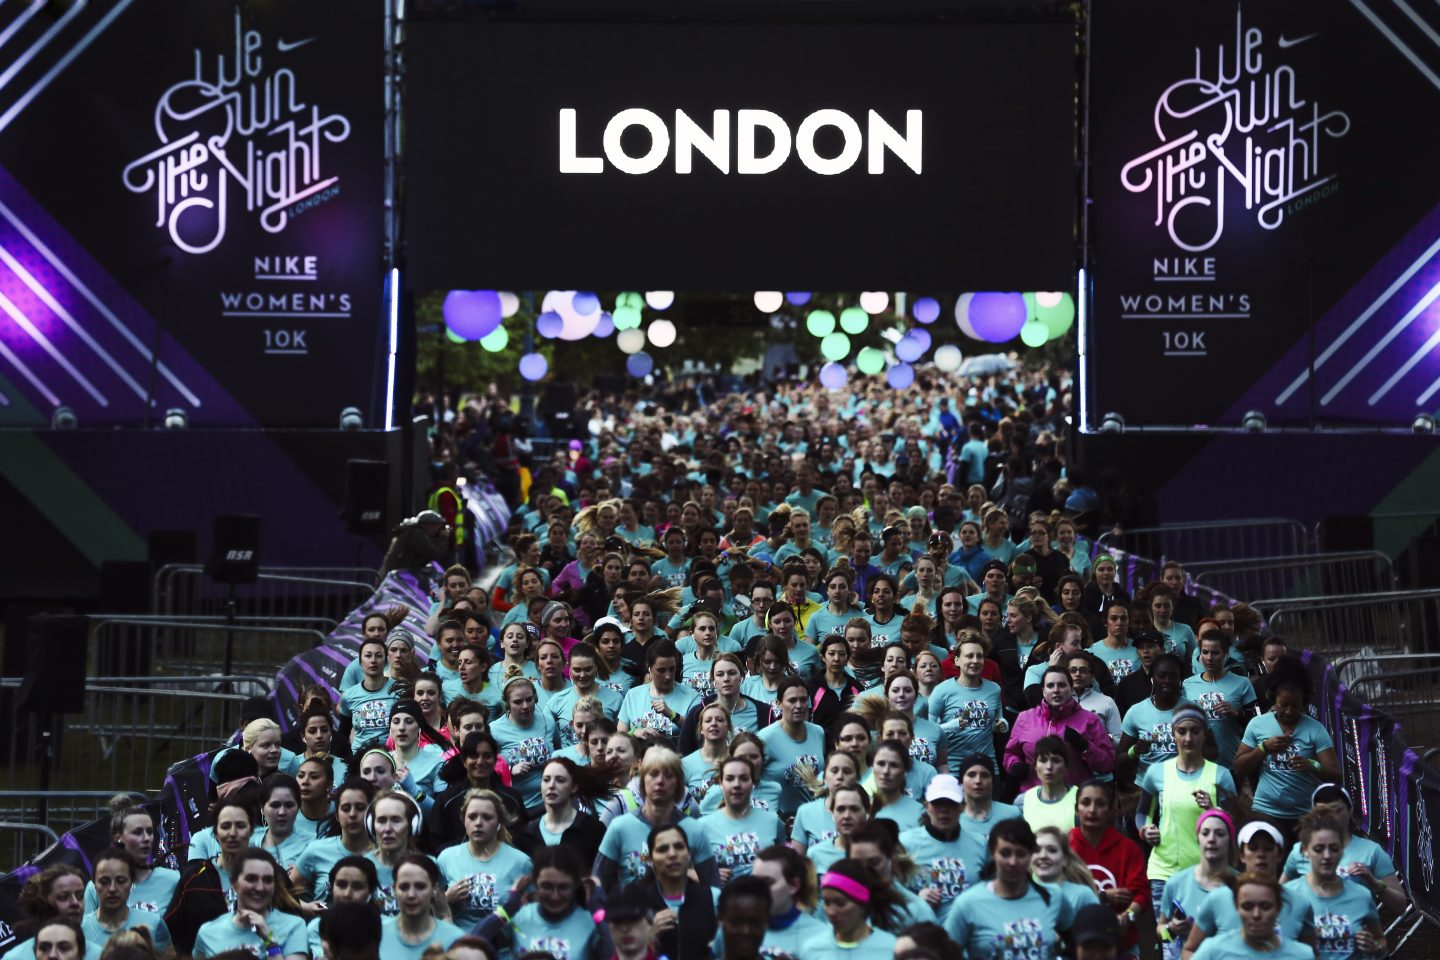 Nike We Own the Night London 2014 Floralesque